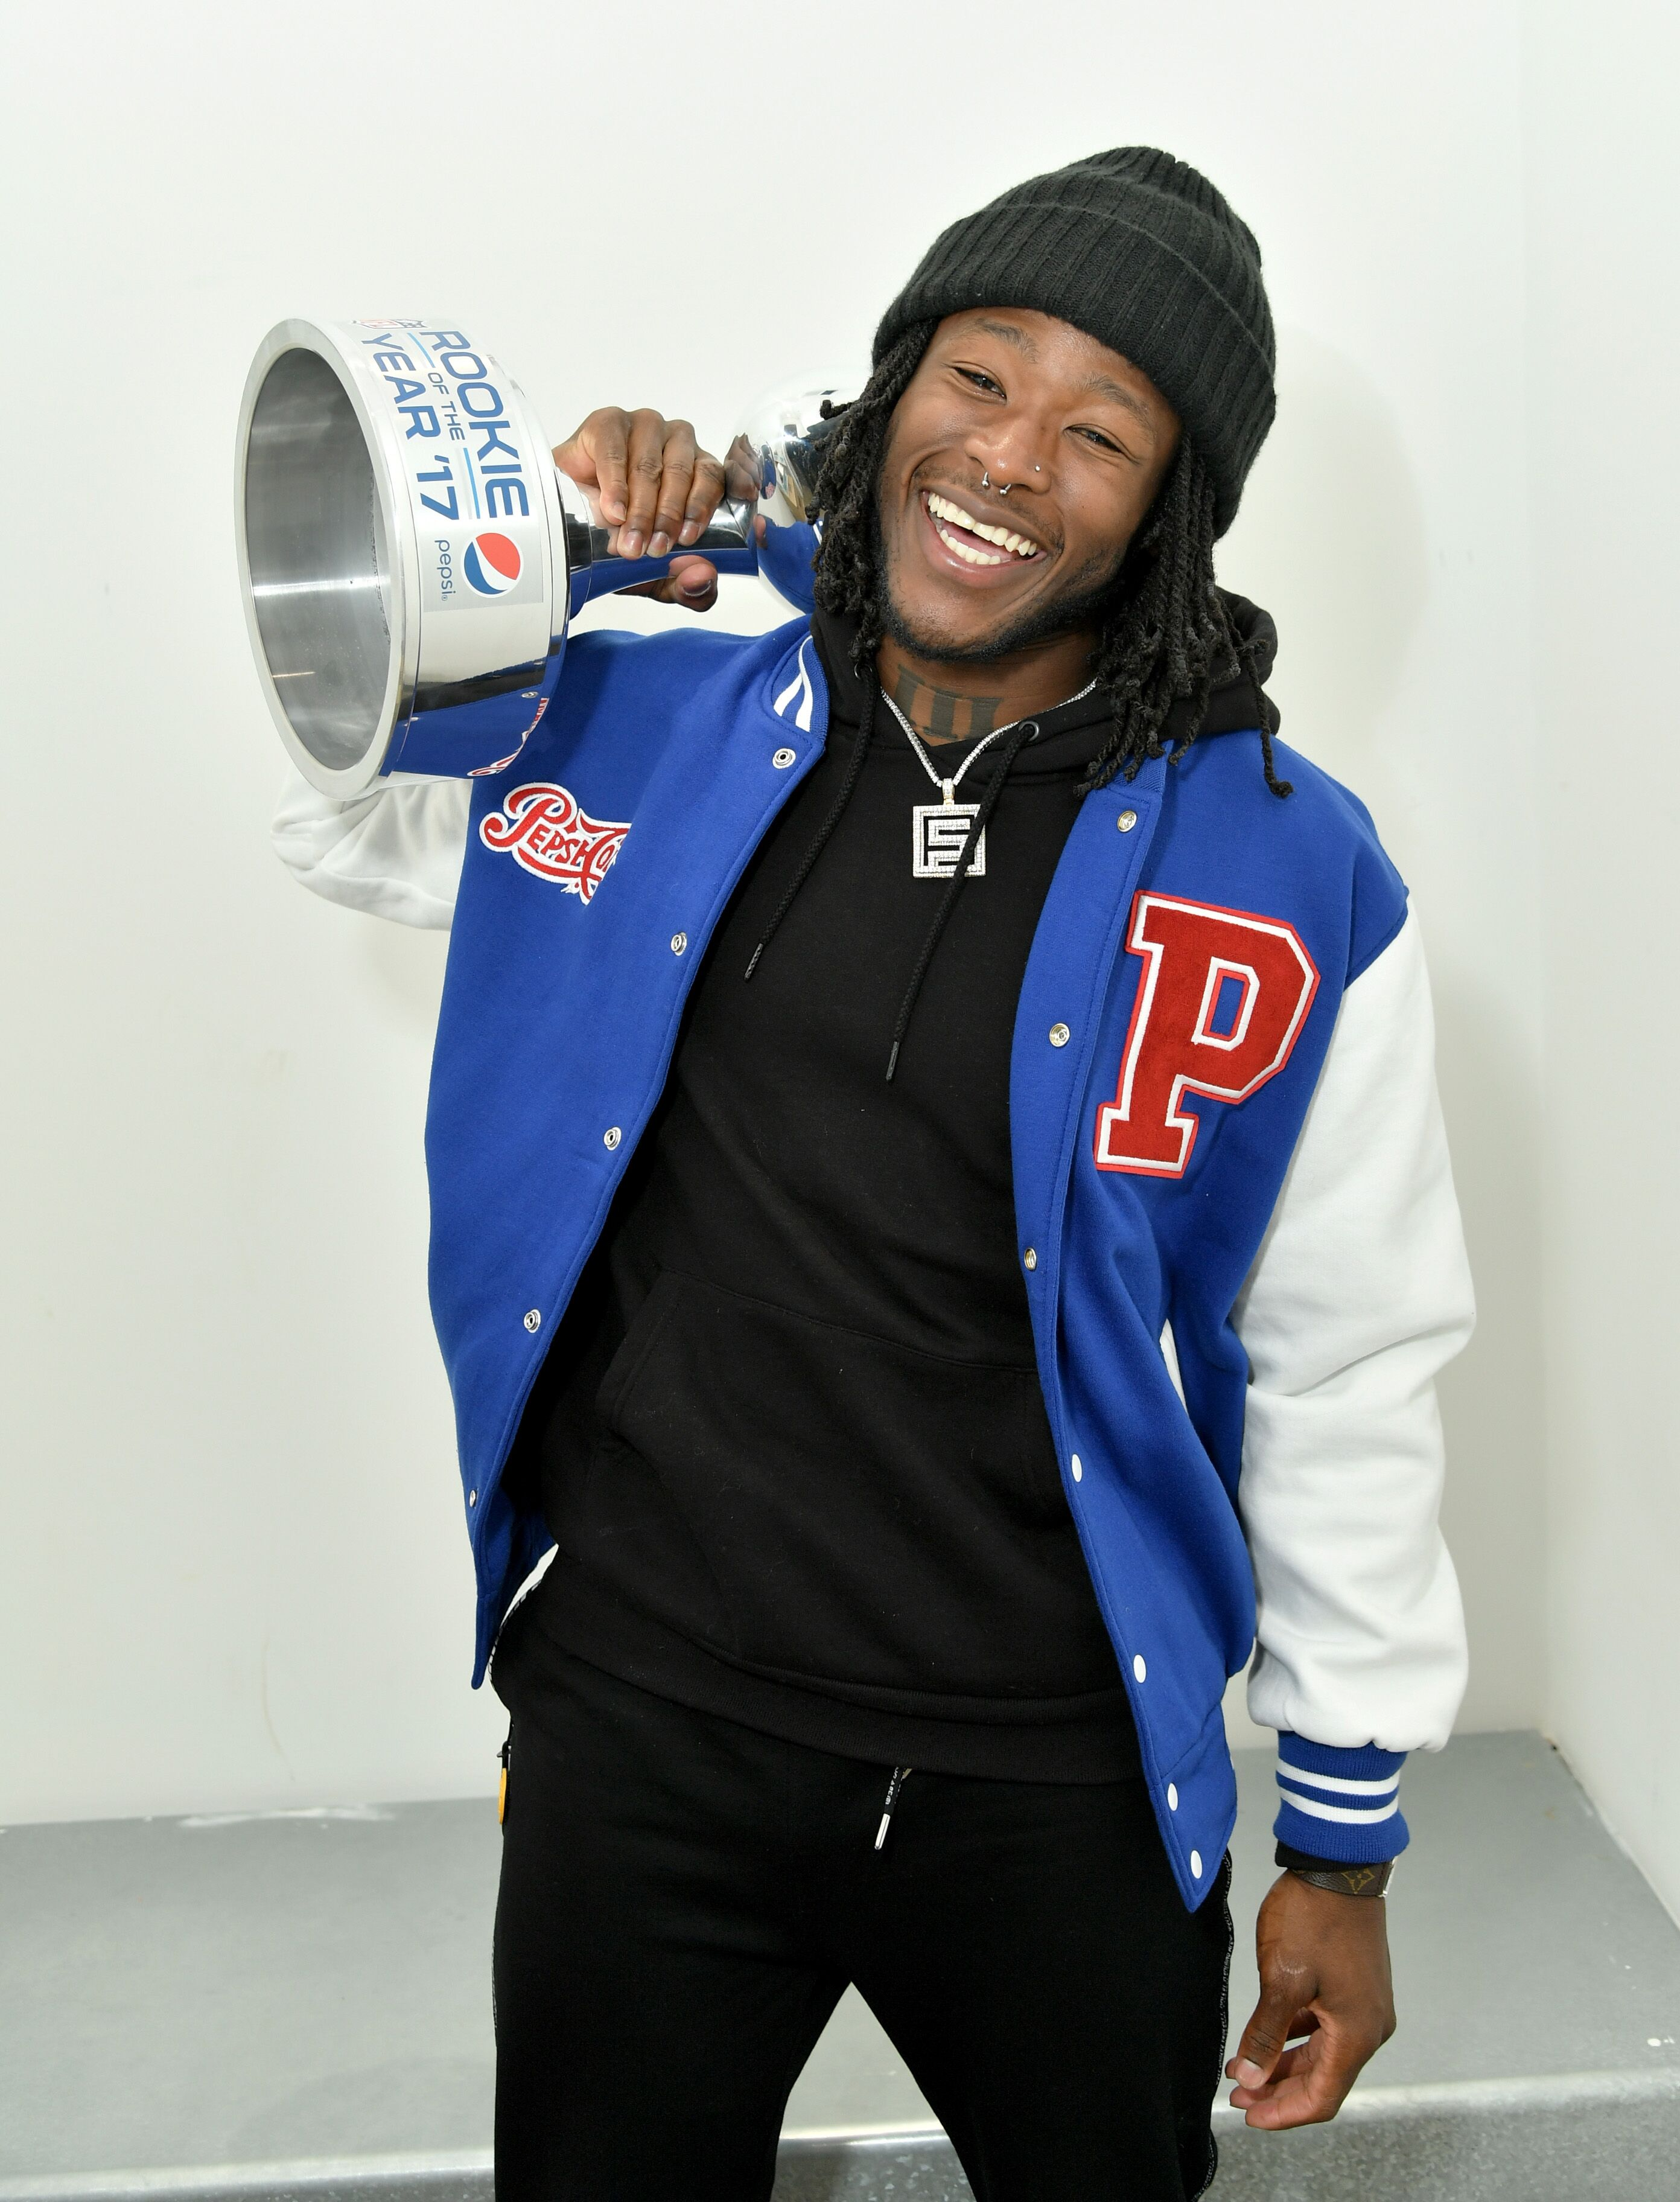 913424114-2017-pepsi-nfl-rookie-of-the-year-winner-alvin-kamara.jpg